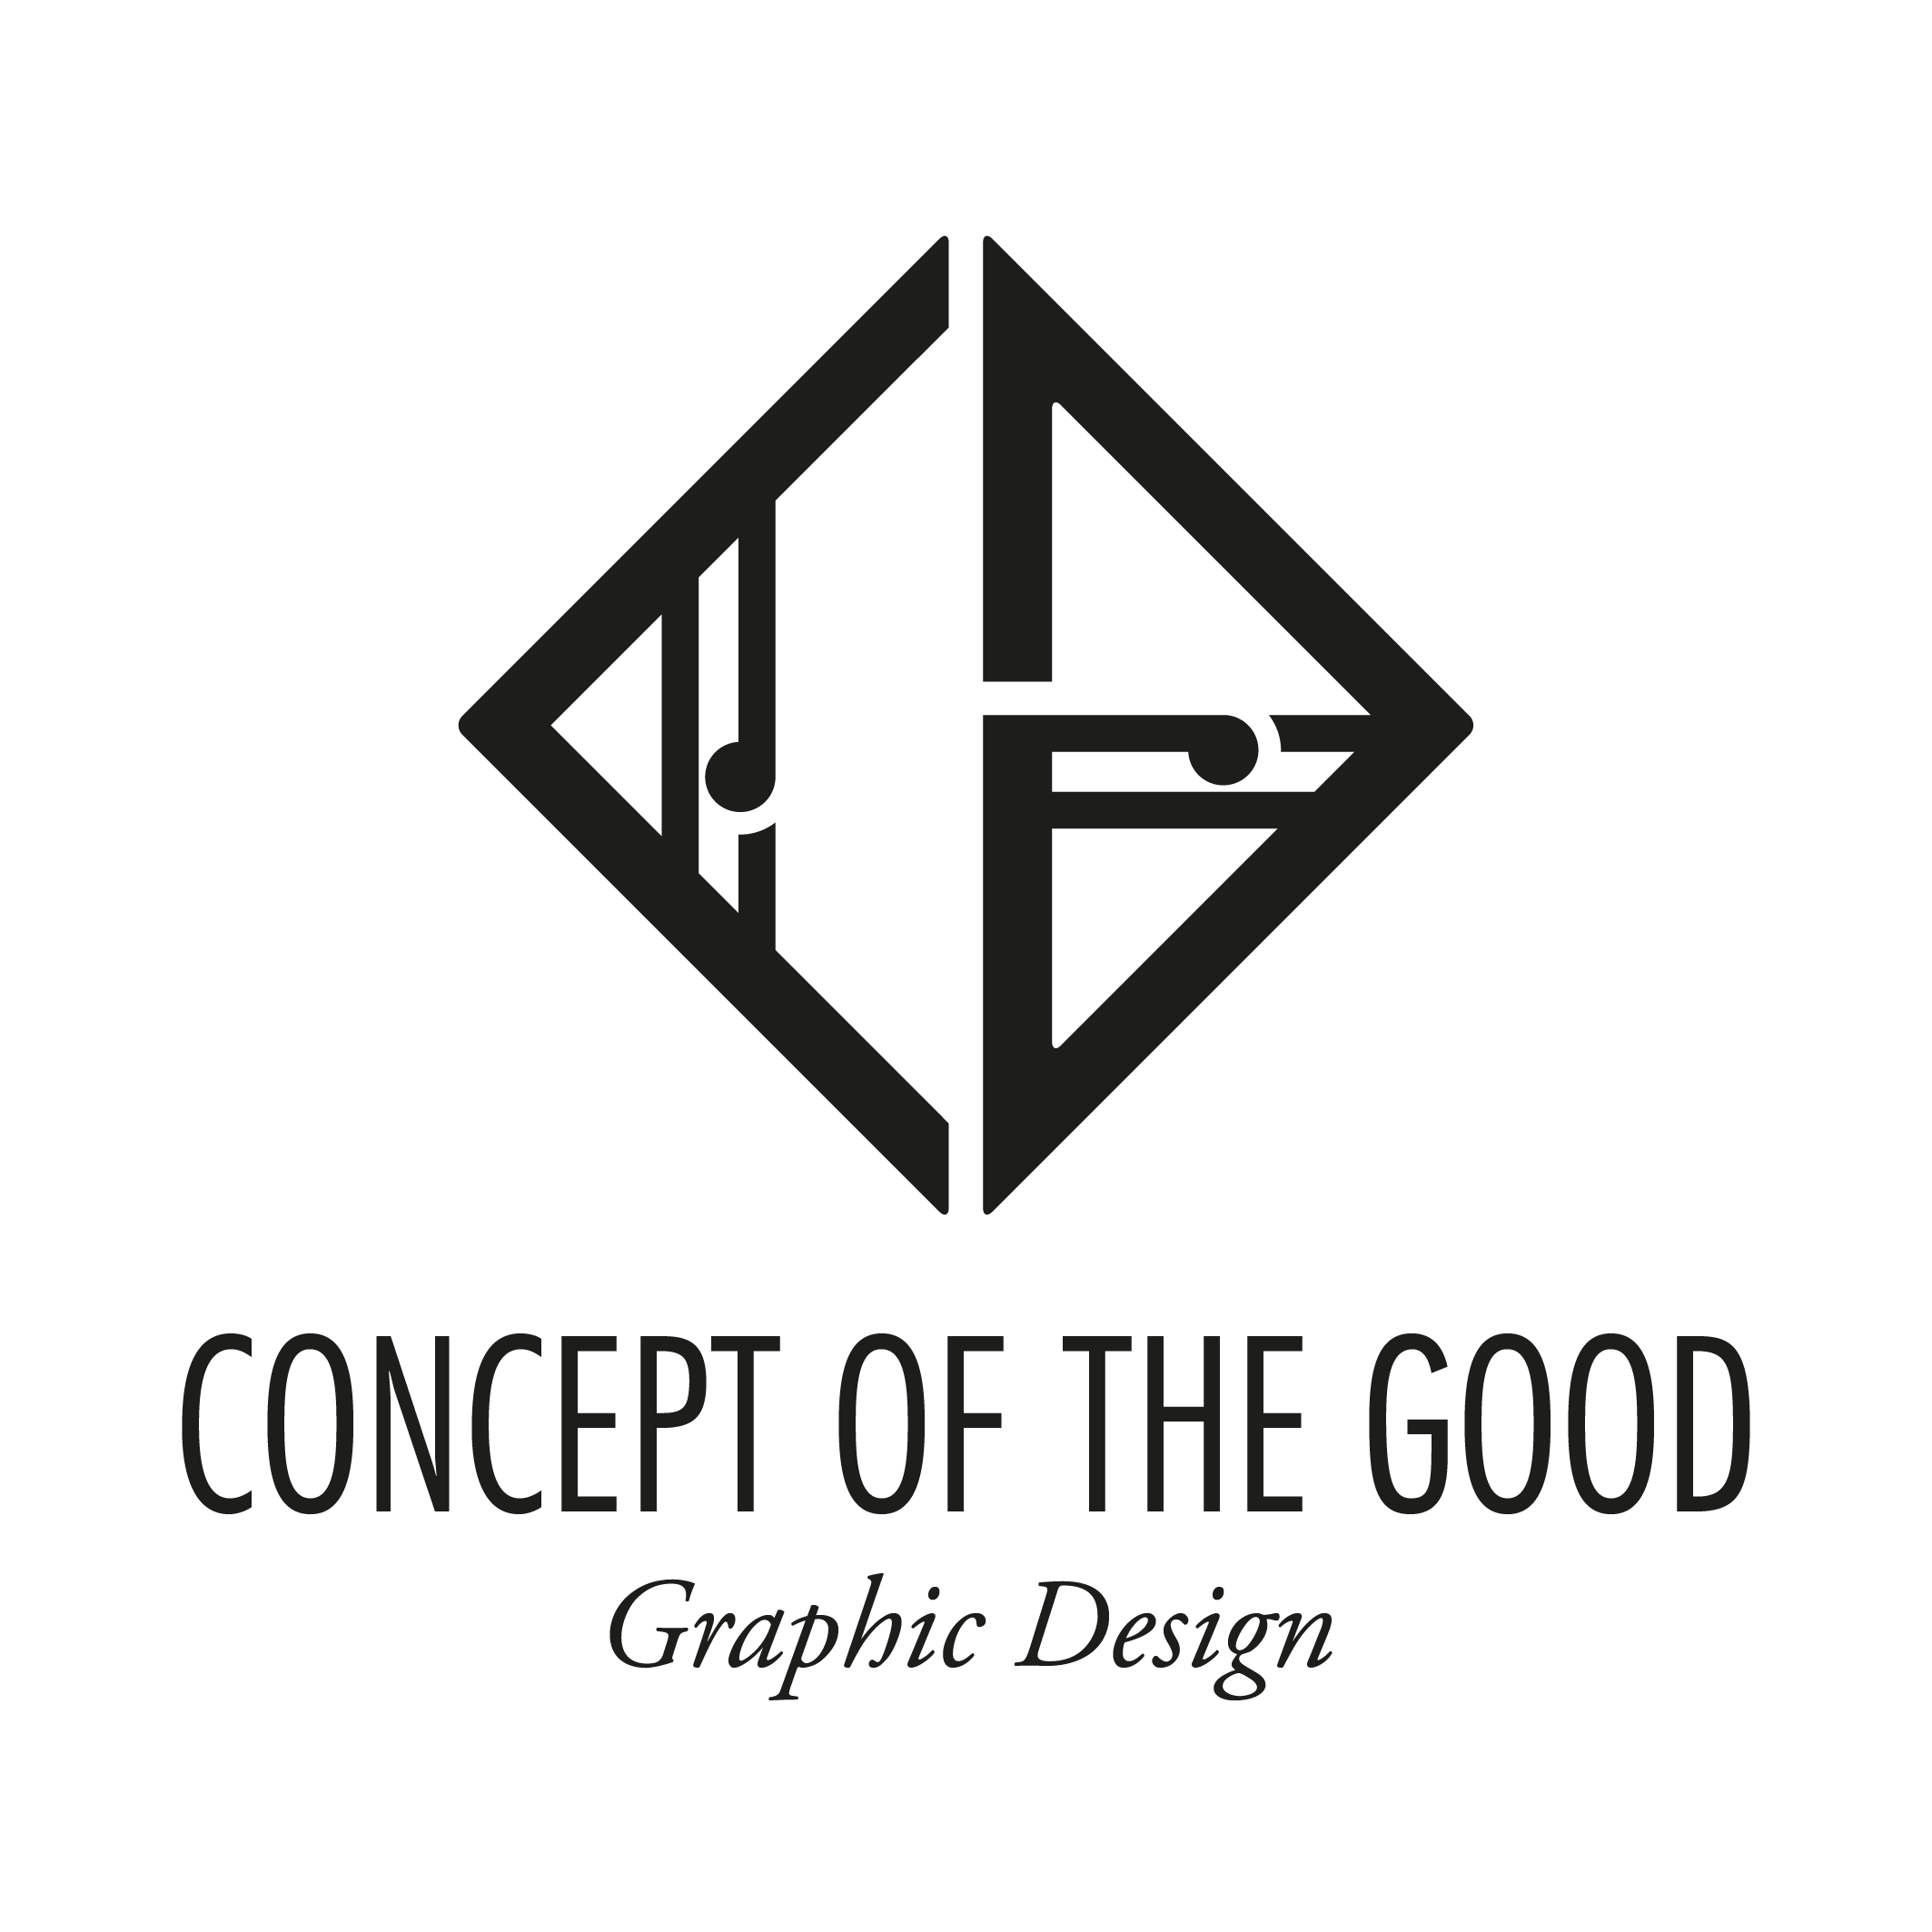 Concept of the Good, Graphic Design